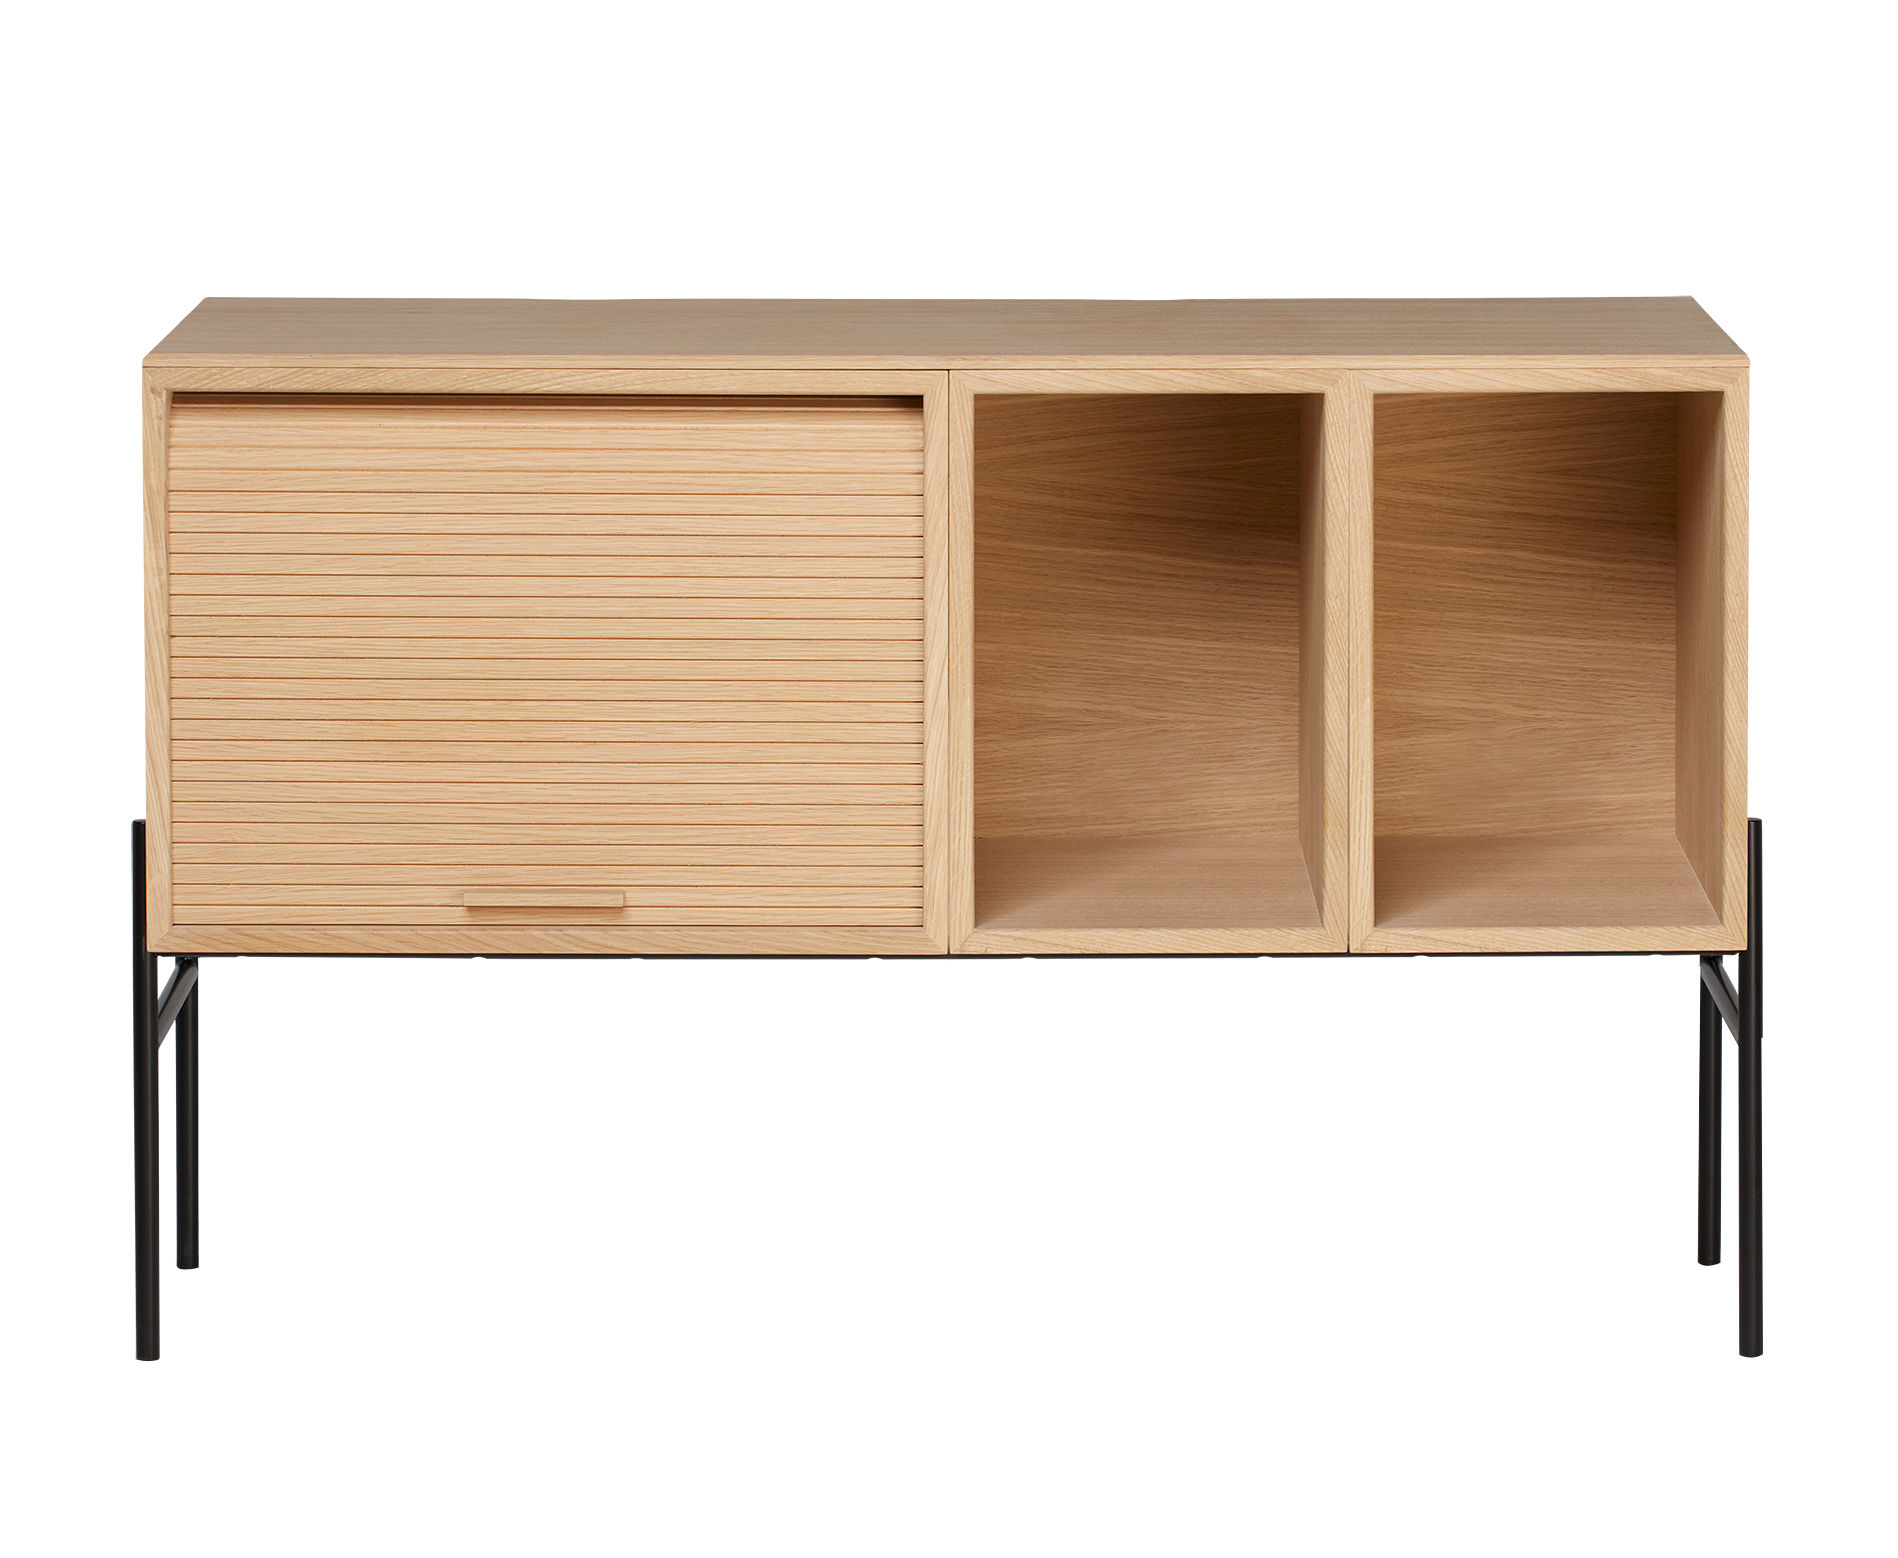 Meuble tv hifive meuble tv l 100 x h 65 cm ch ne clair northern made in design - Meuble tv design 100 cm ...